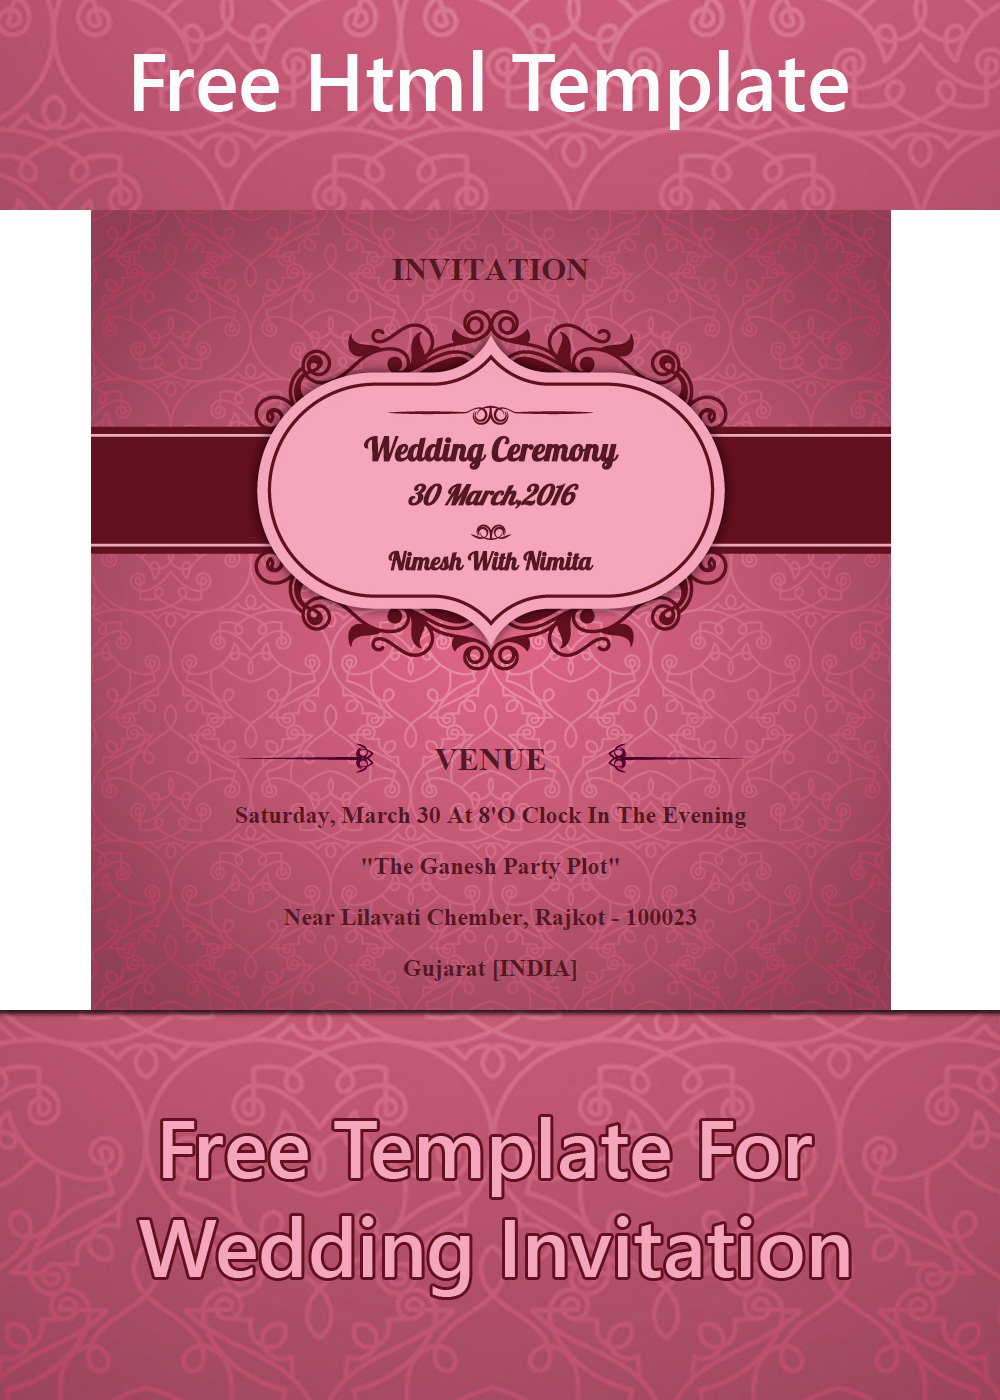 editable wedding invitation templates free download.html